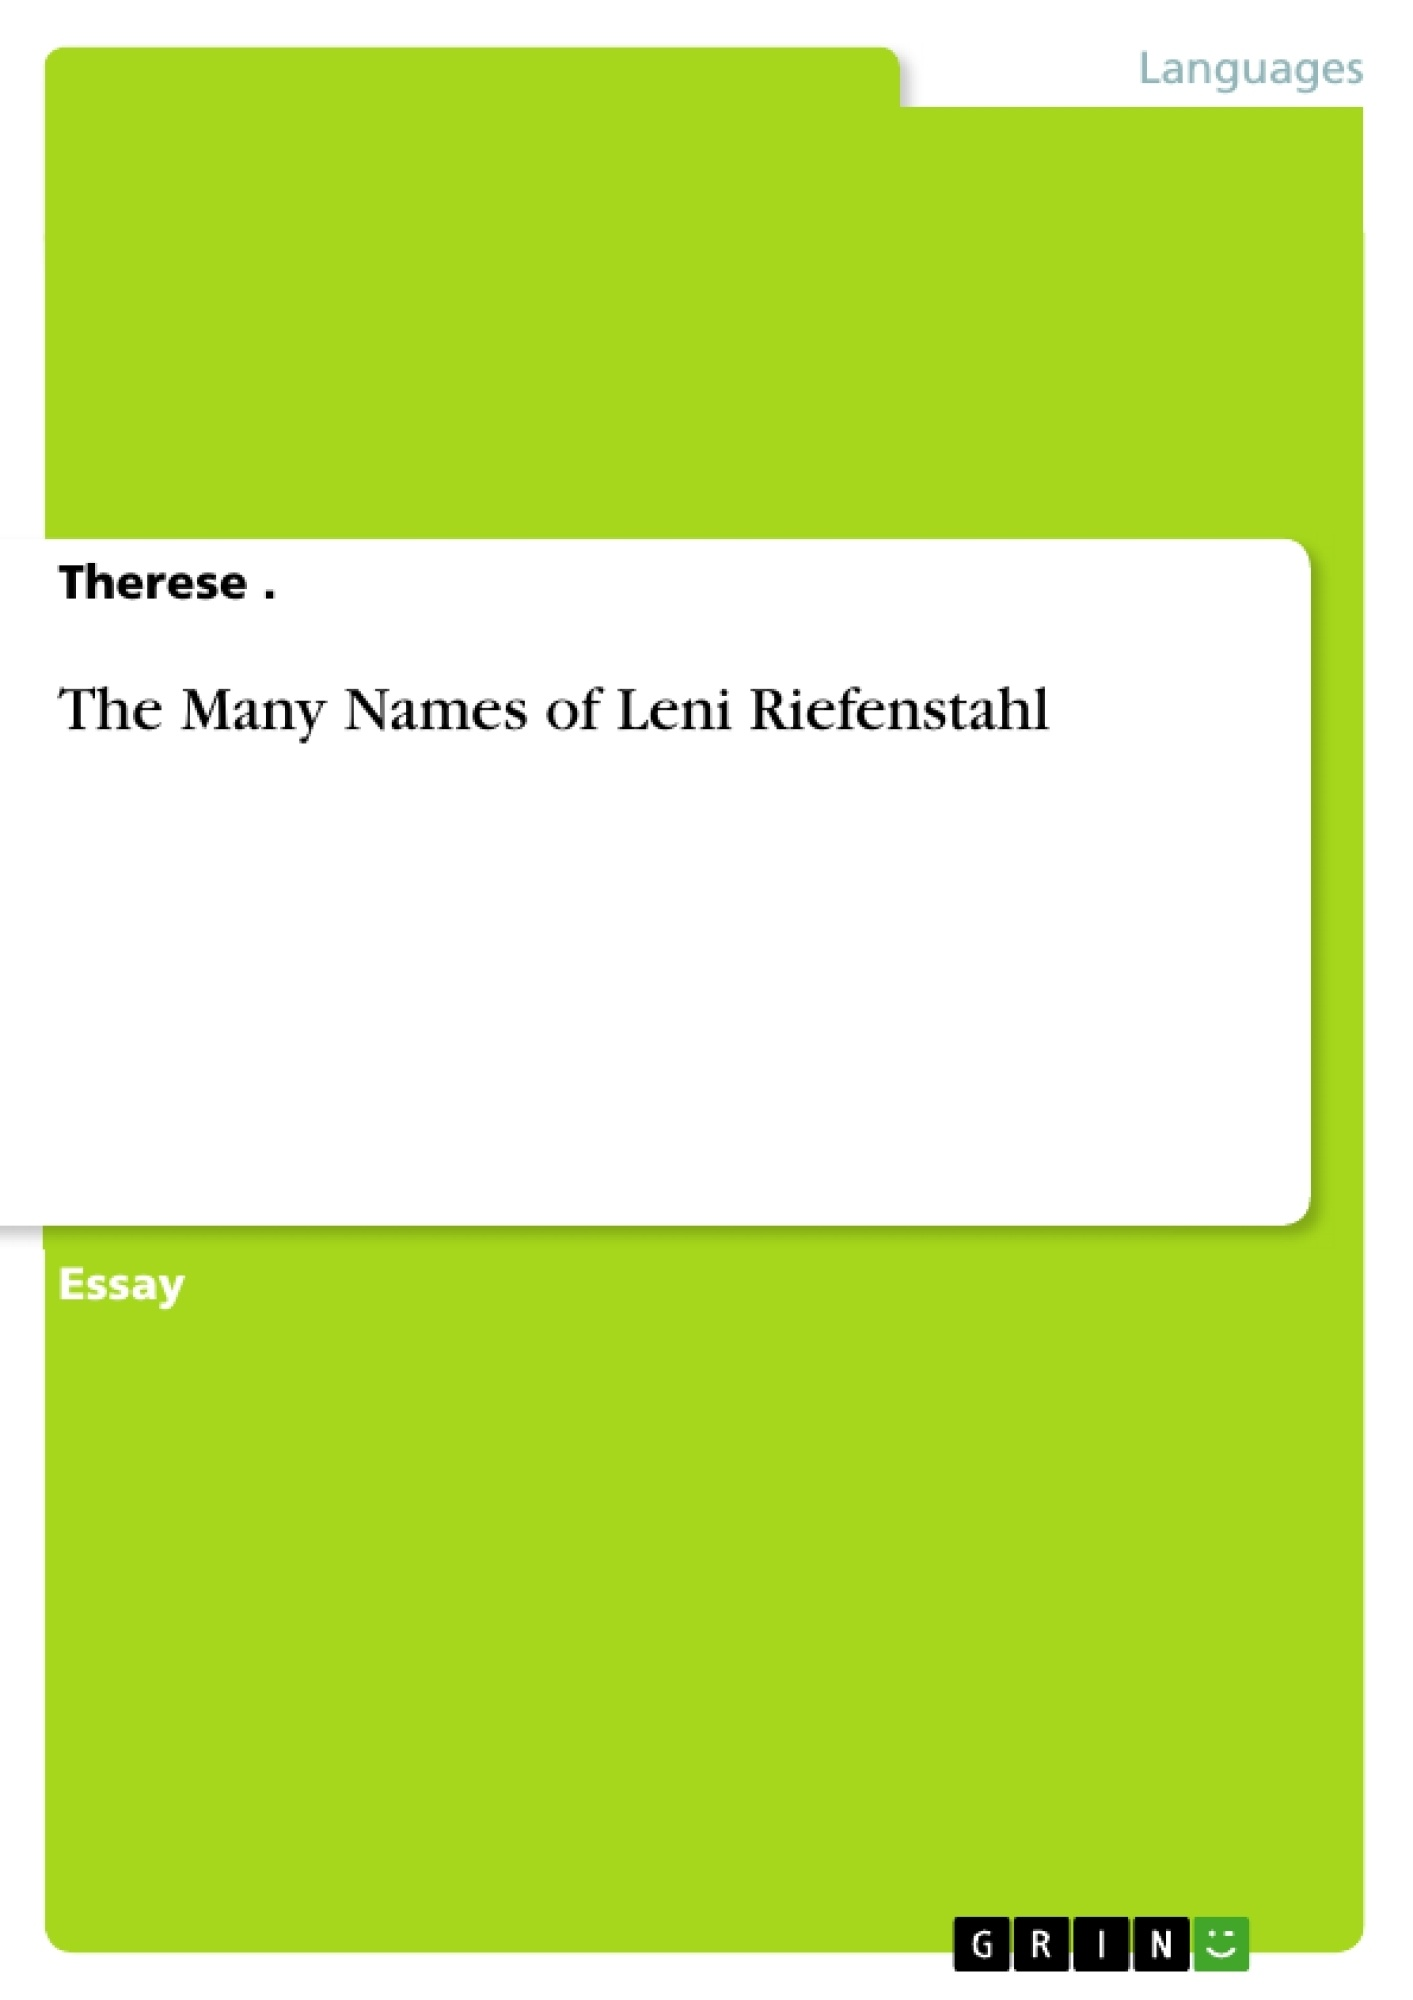 Title: The Many Names of Leni Riefenstahl